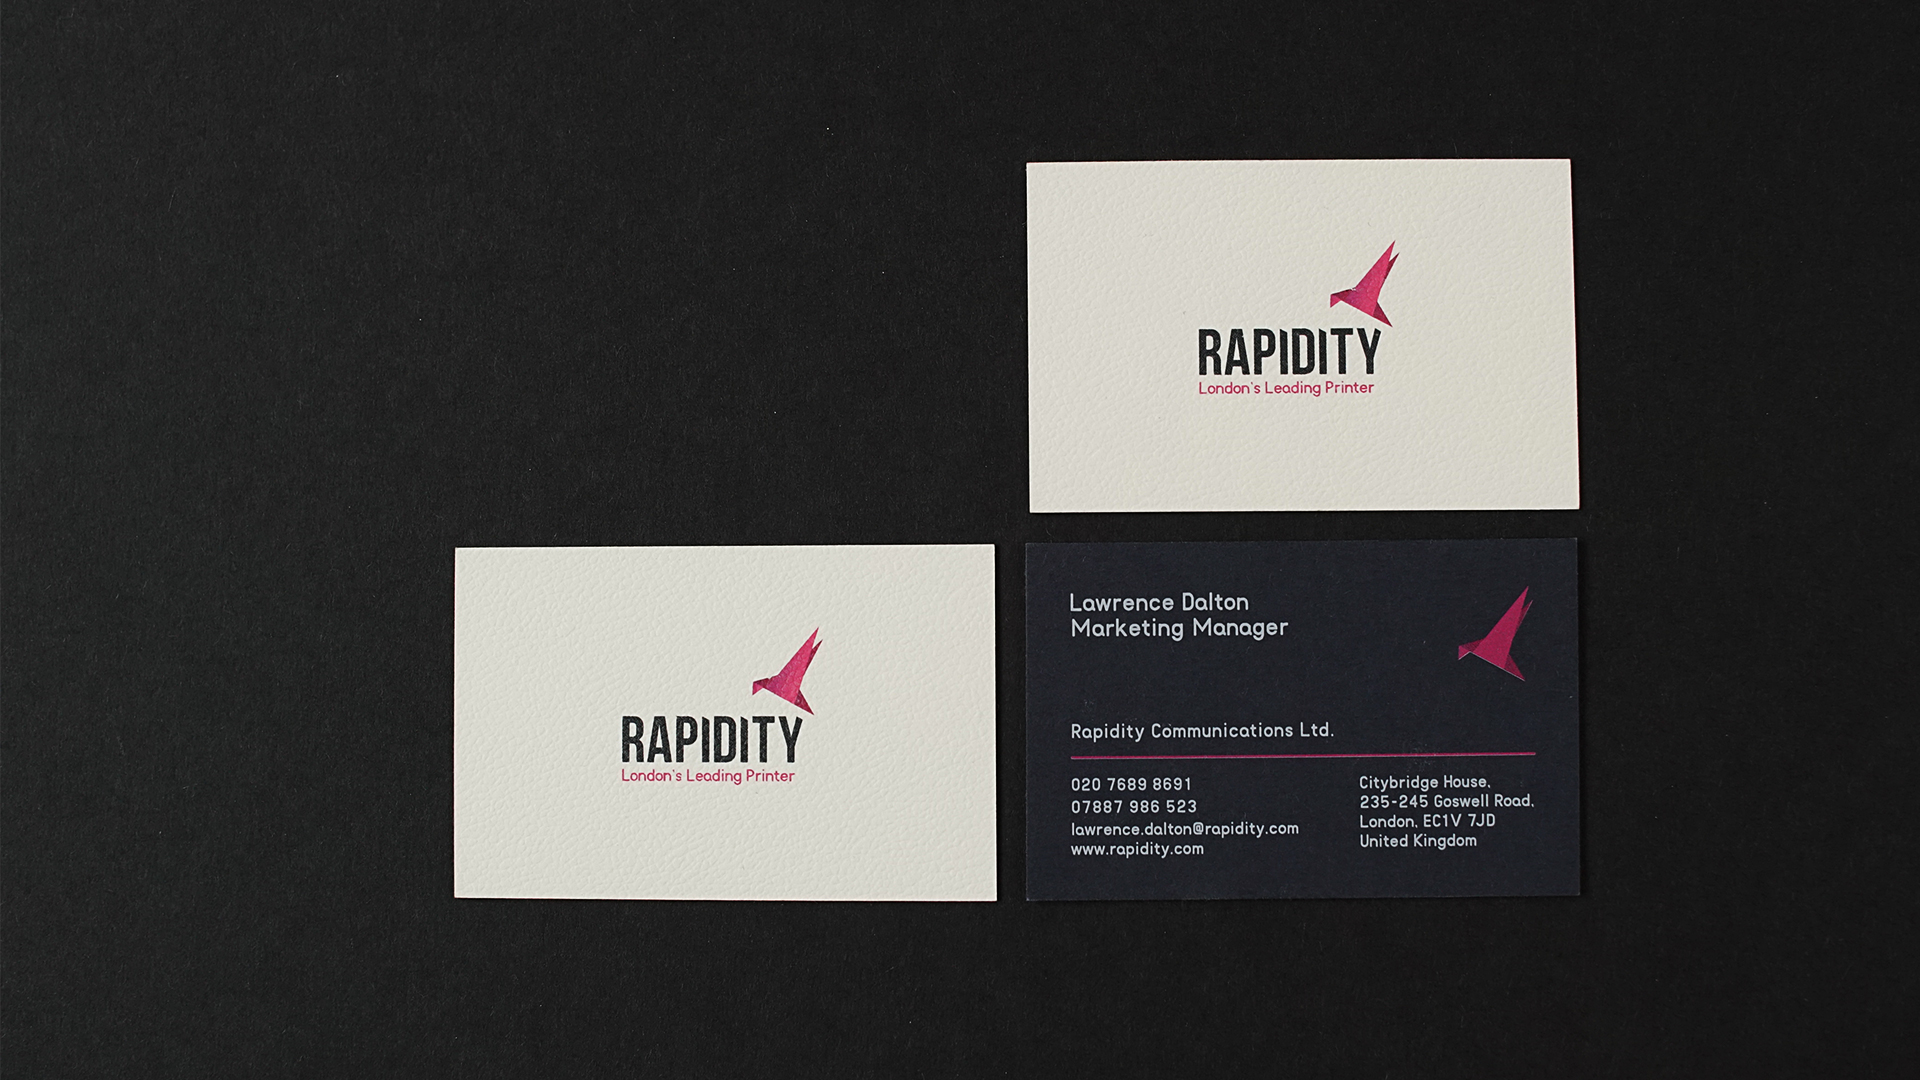 Award Winning! - Rapidity